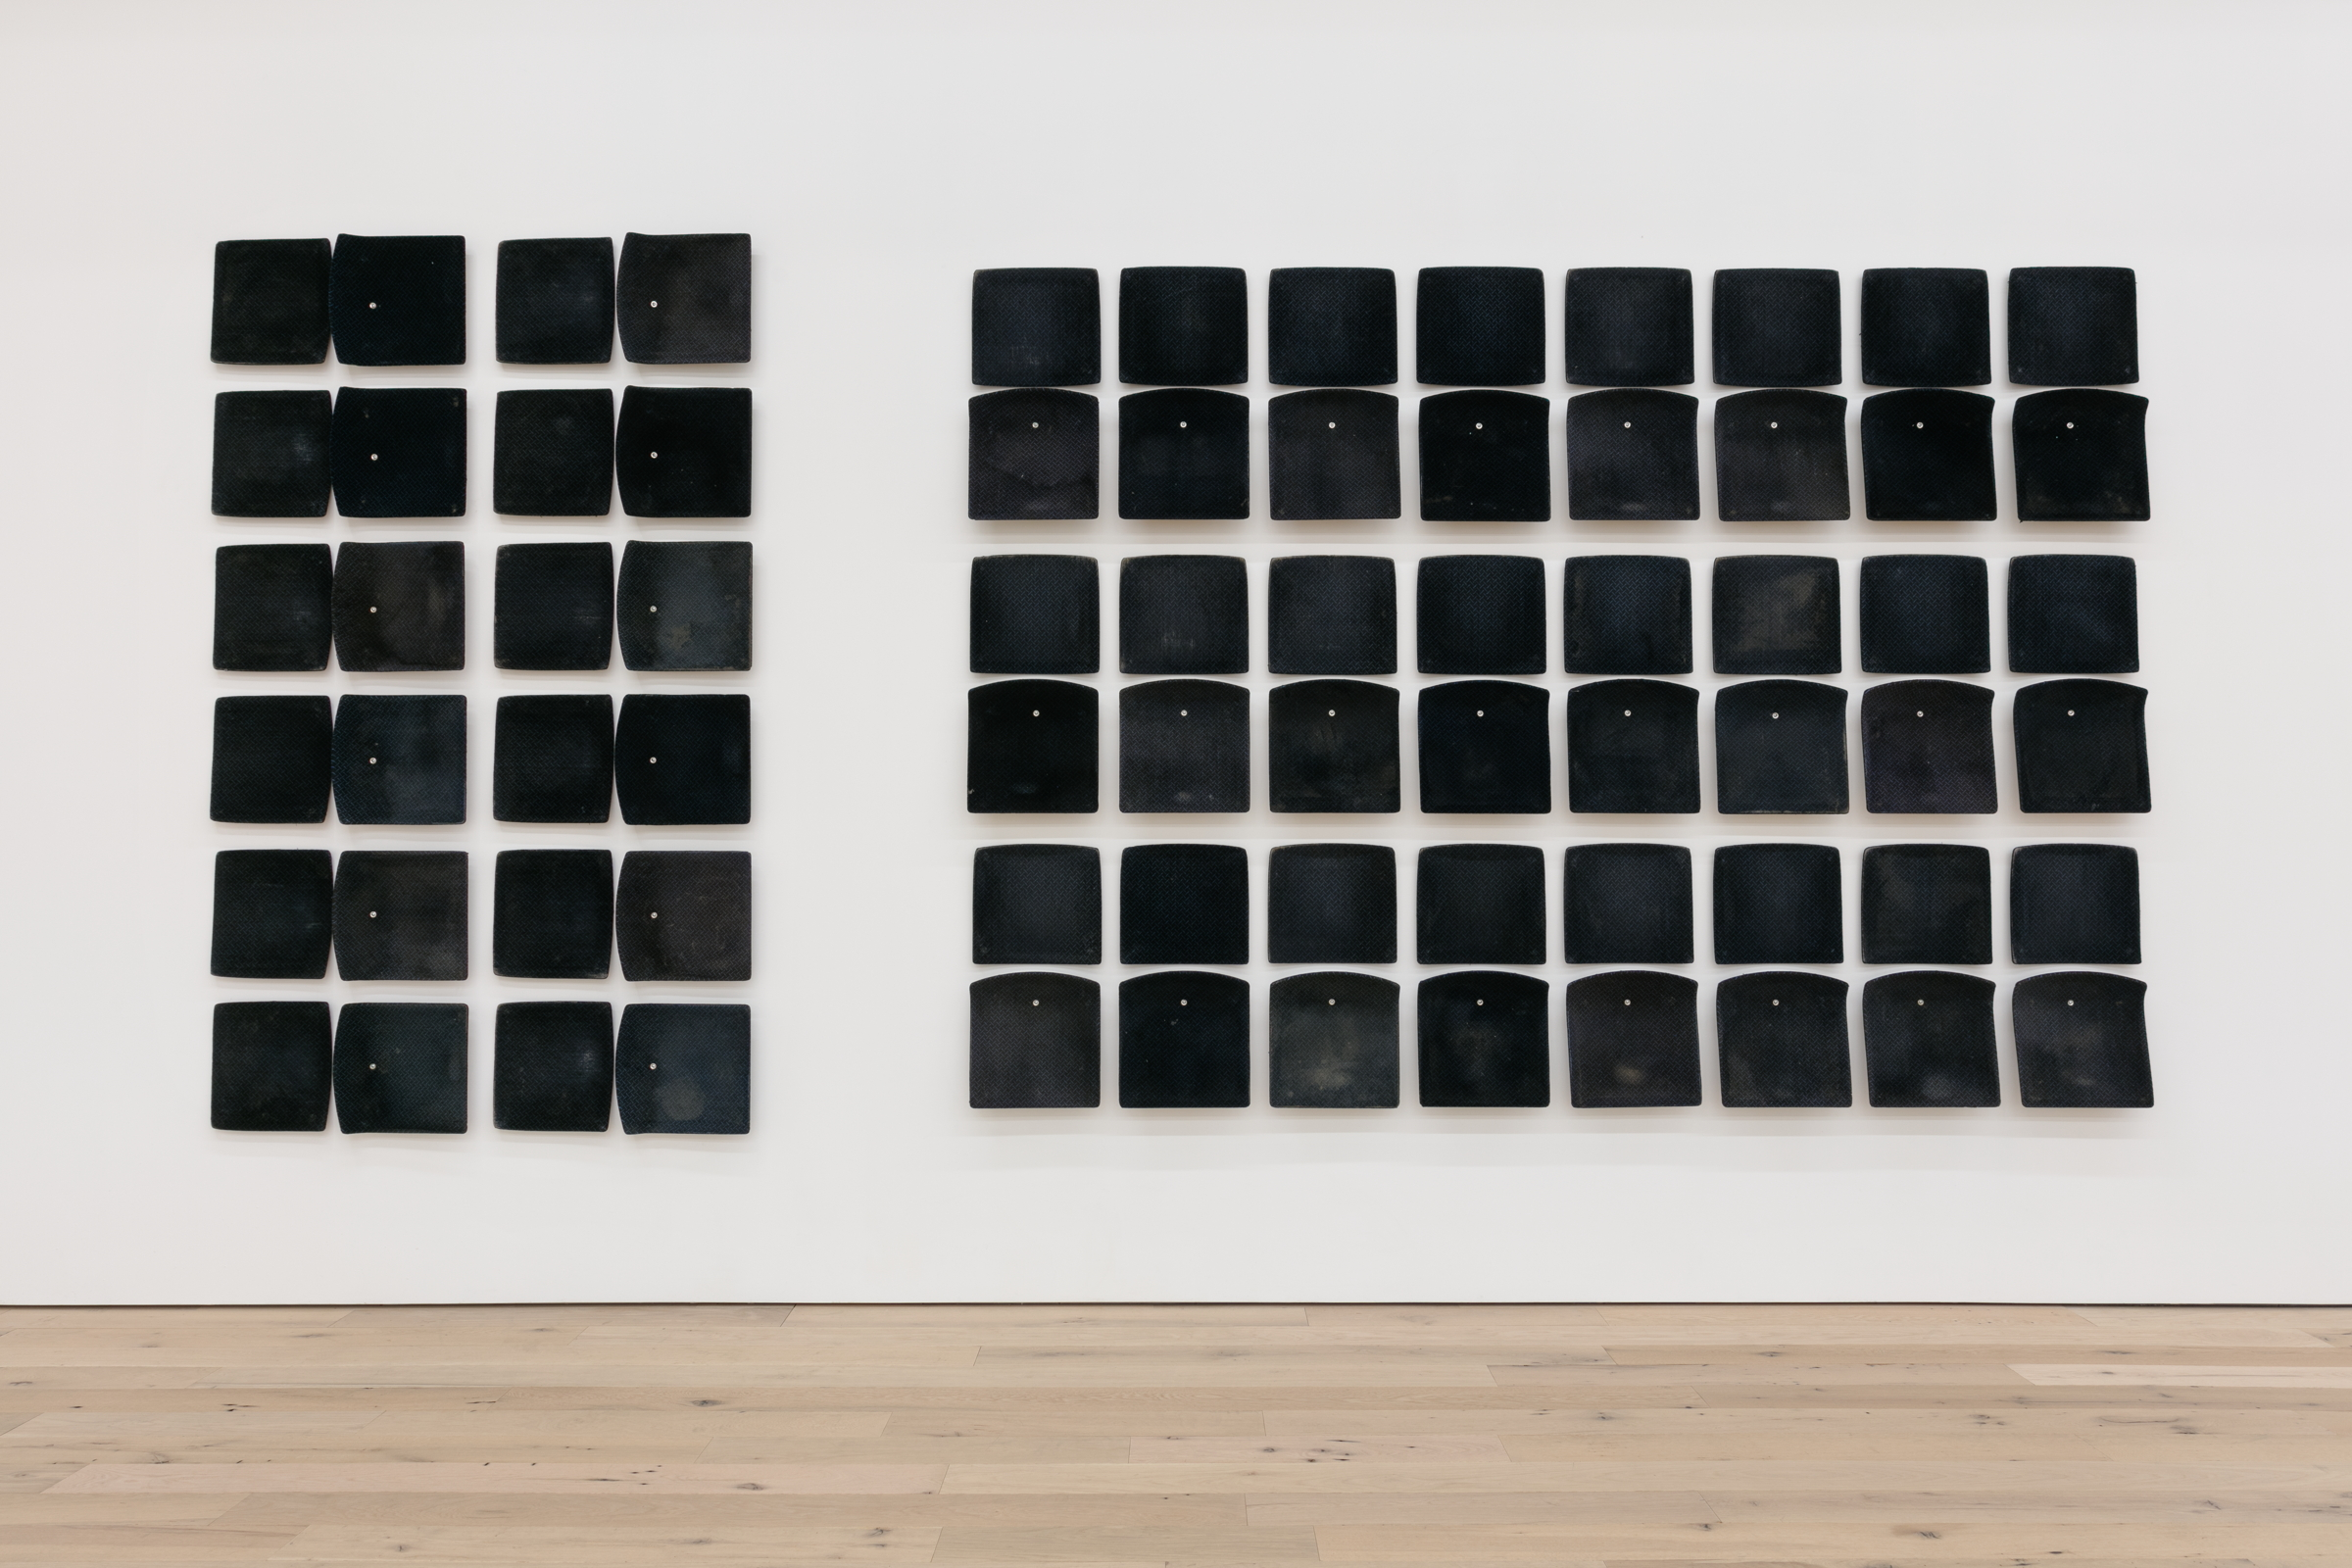 Jessica Vaughn, After Willis (rubbed, used and moved) #005 , 2017, 36 individual pairs of used machine fabricated public transit train seats (Chicago Transit Authority 1998-2011), 98 x 225 x 0.25 in.